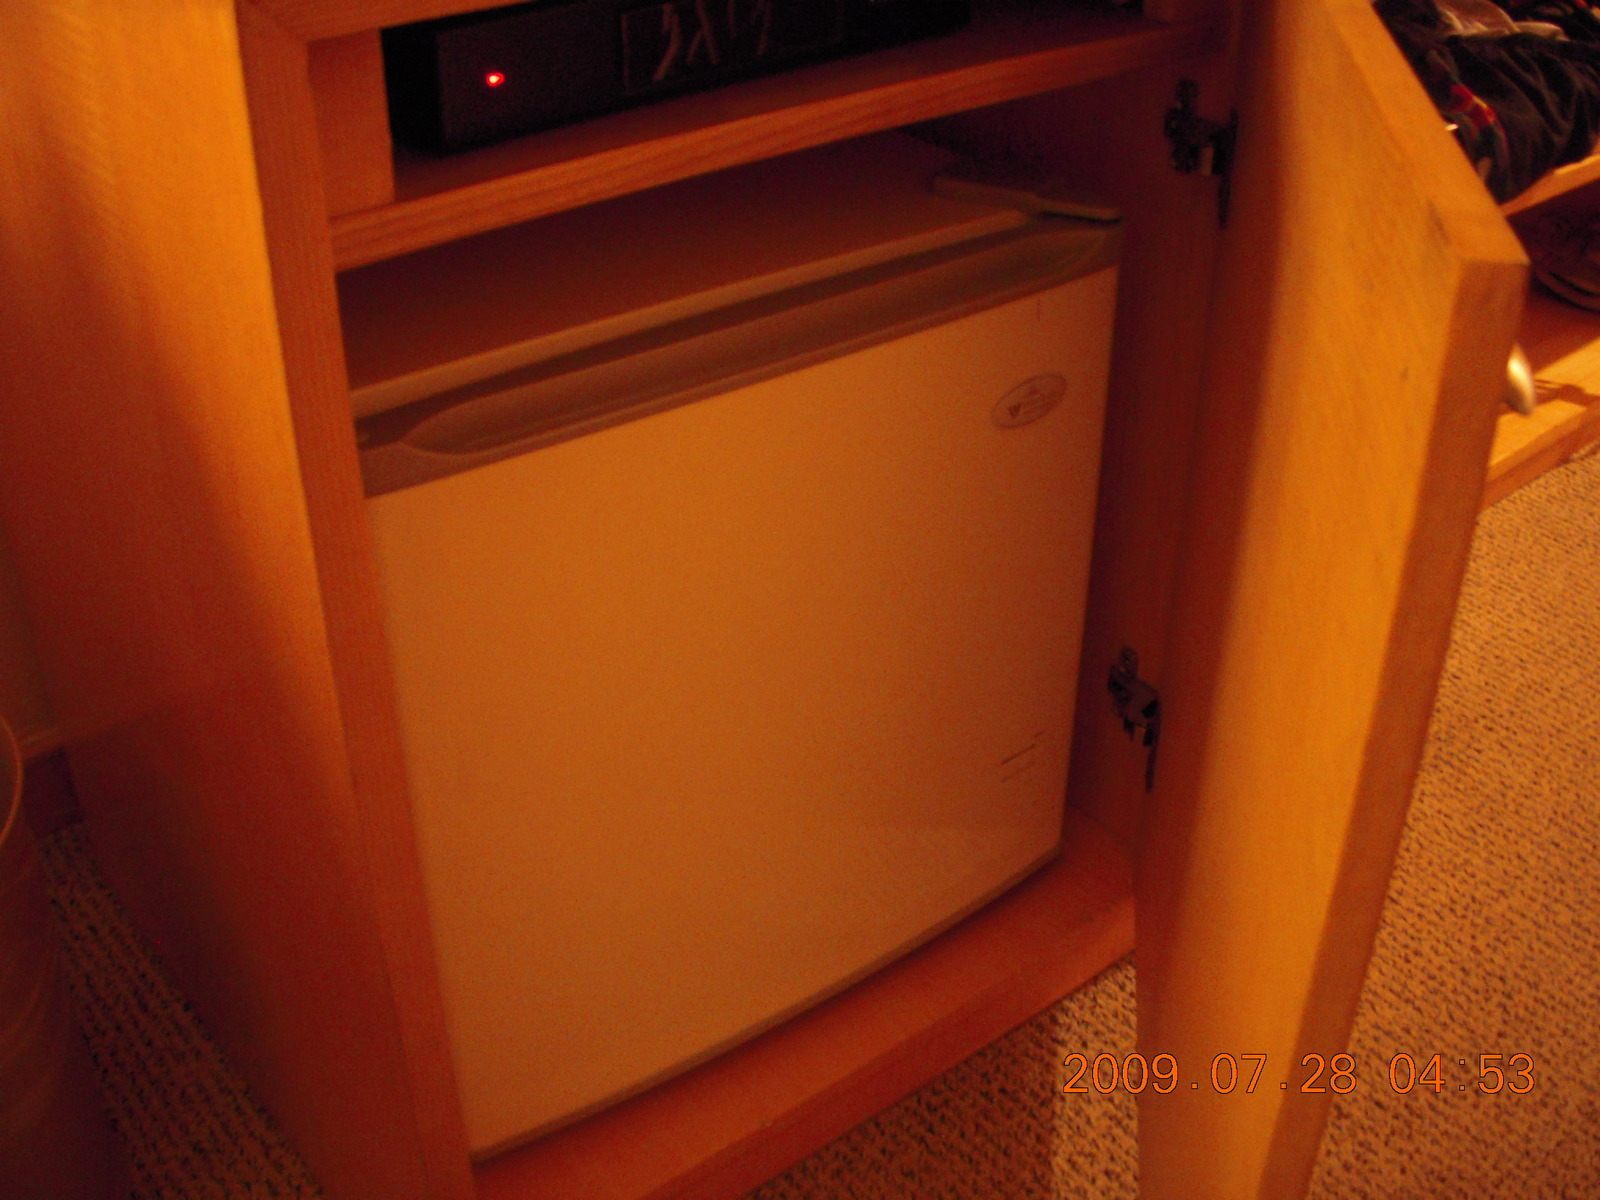 China eclipse - refrigerator in cabinet - not a good plan for heat dissipation